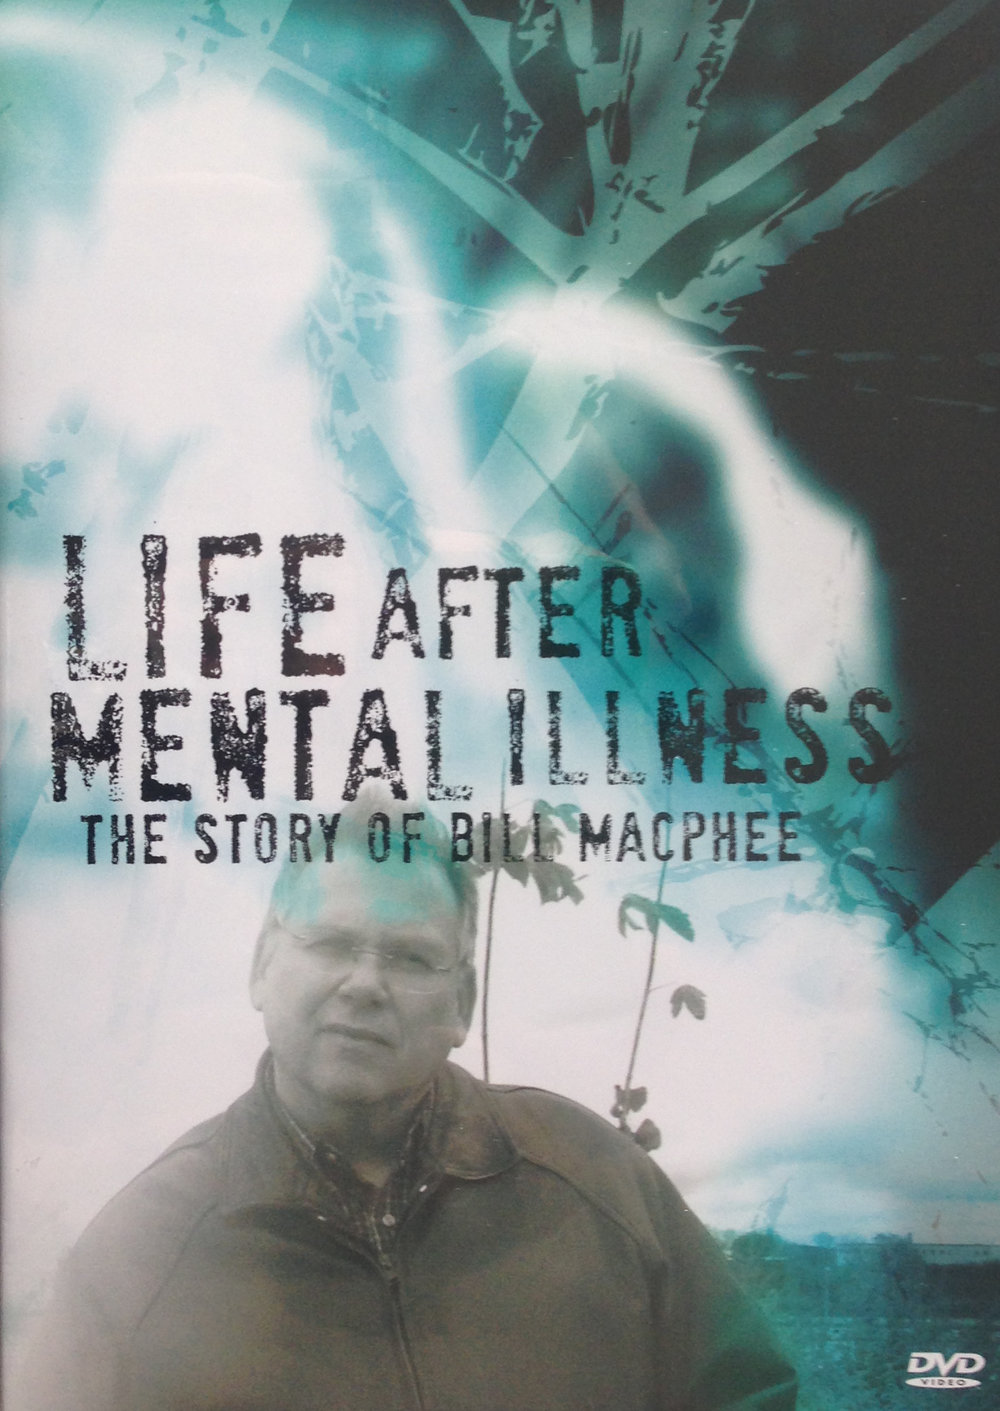 Only $6.95 plus shipping & taxes DVD Story: Life After Mental Illness: The Story of Bill MacPhee, produced by award-winning filmmaker Mark Ashdown. There is life after mental illness and Bill MacPhee proves it. Experience his story captured from one of Bill's inspirational talks on how he pulled himself from the depths of schizophrenia and depression. Interviews with family, friends and world renowned Psychiatrist Ruth Baruch share their experiences with Bill and discuss the harmful stigma associated with mental illnesses.